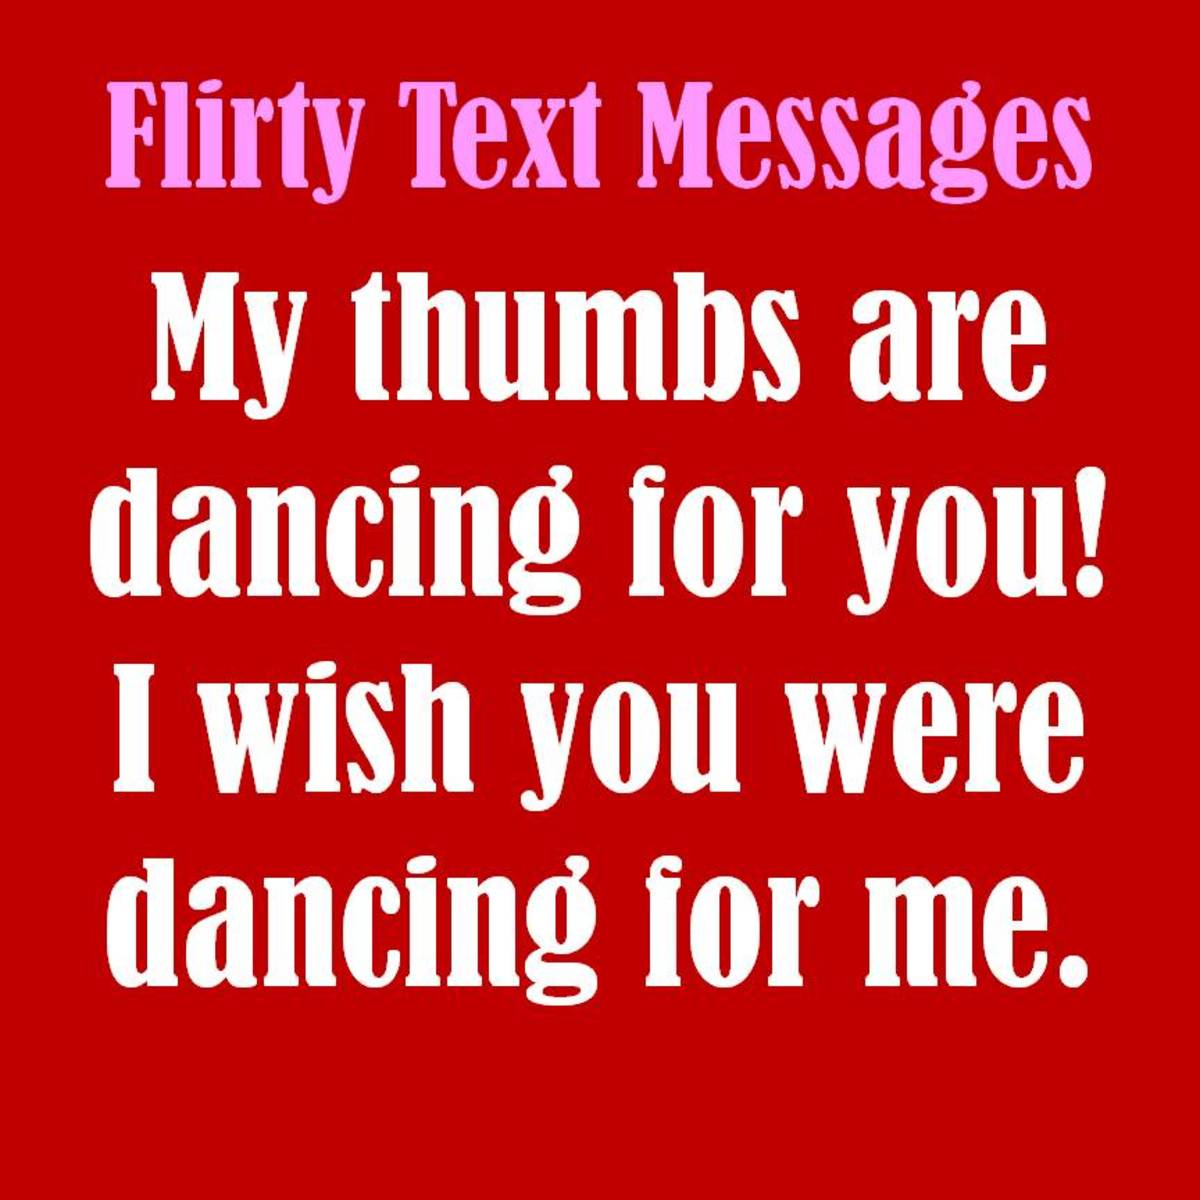 My thumbs are dancing for you! I'm looking forward to dancing with you.